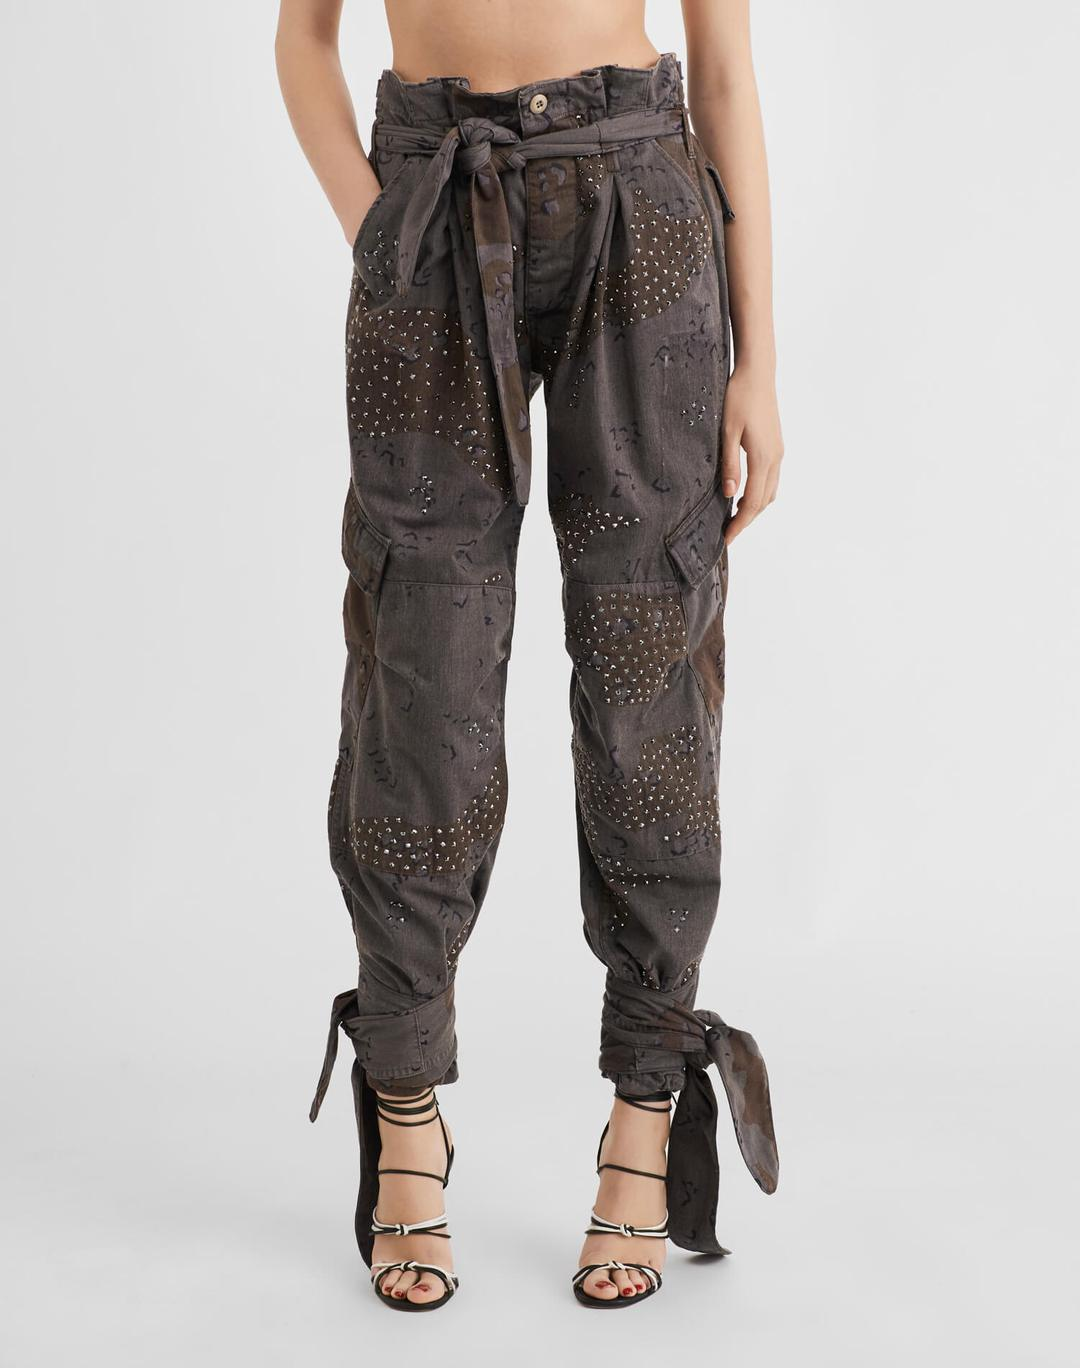 Pleated 80s High Rise Pant w/ Swarovski Crystals